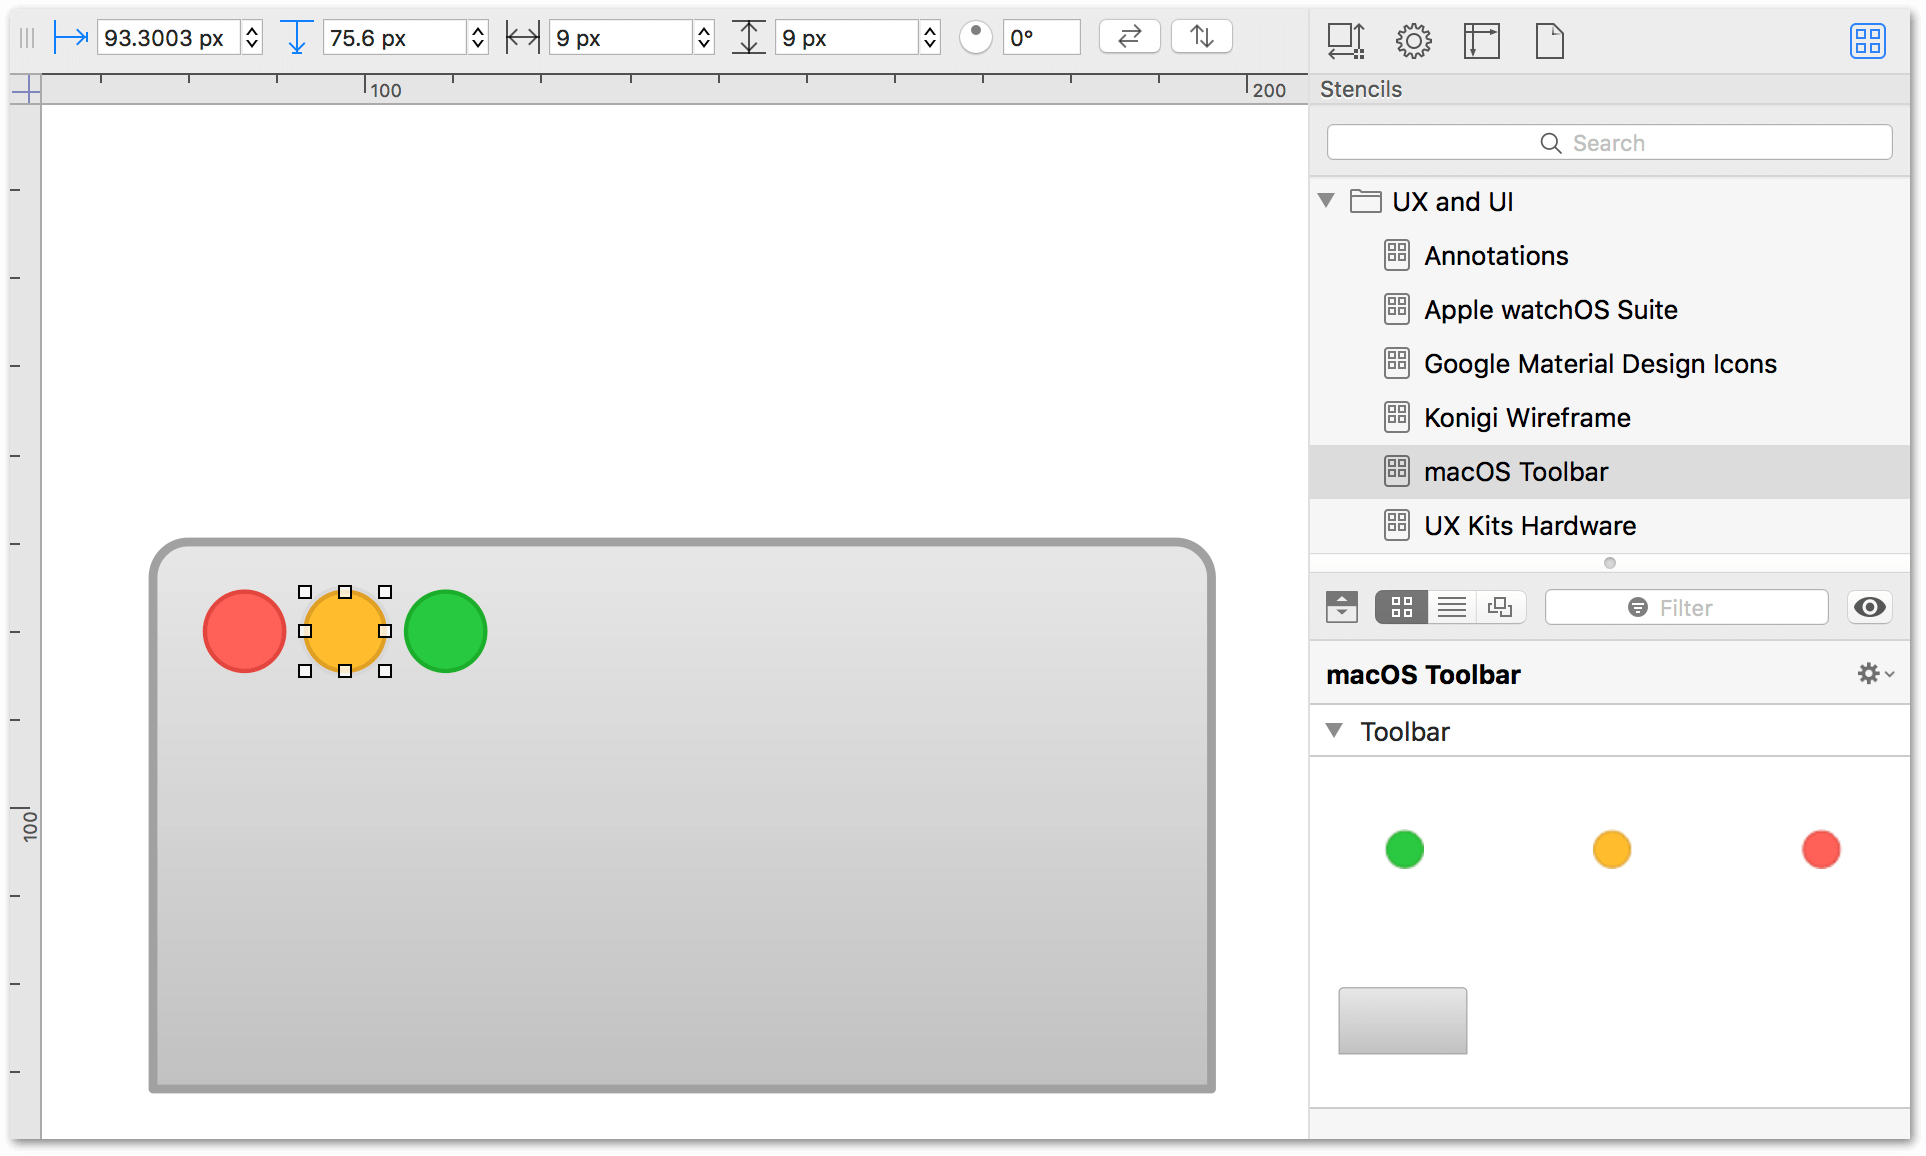 OmniGraffle 7 6 Reference Manual for macOS - Using, Curating